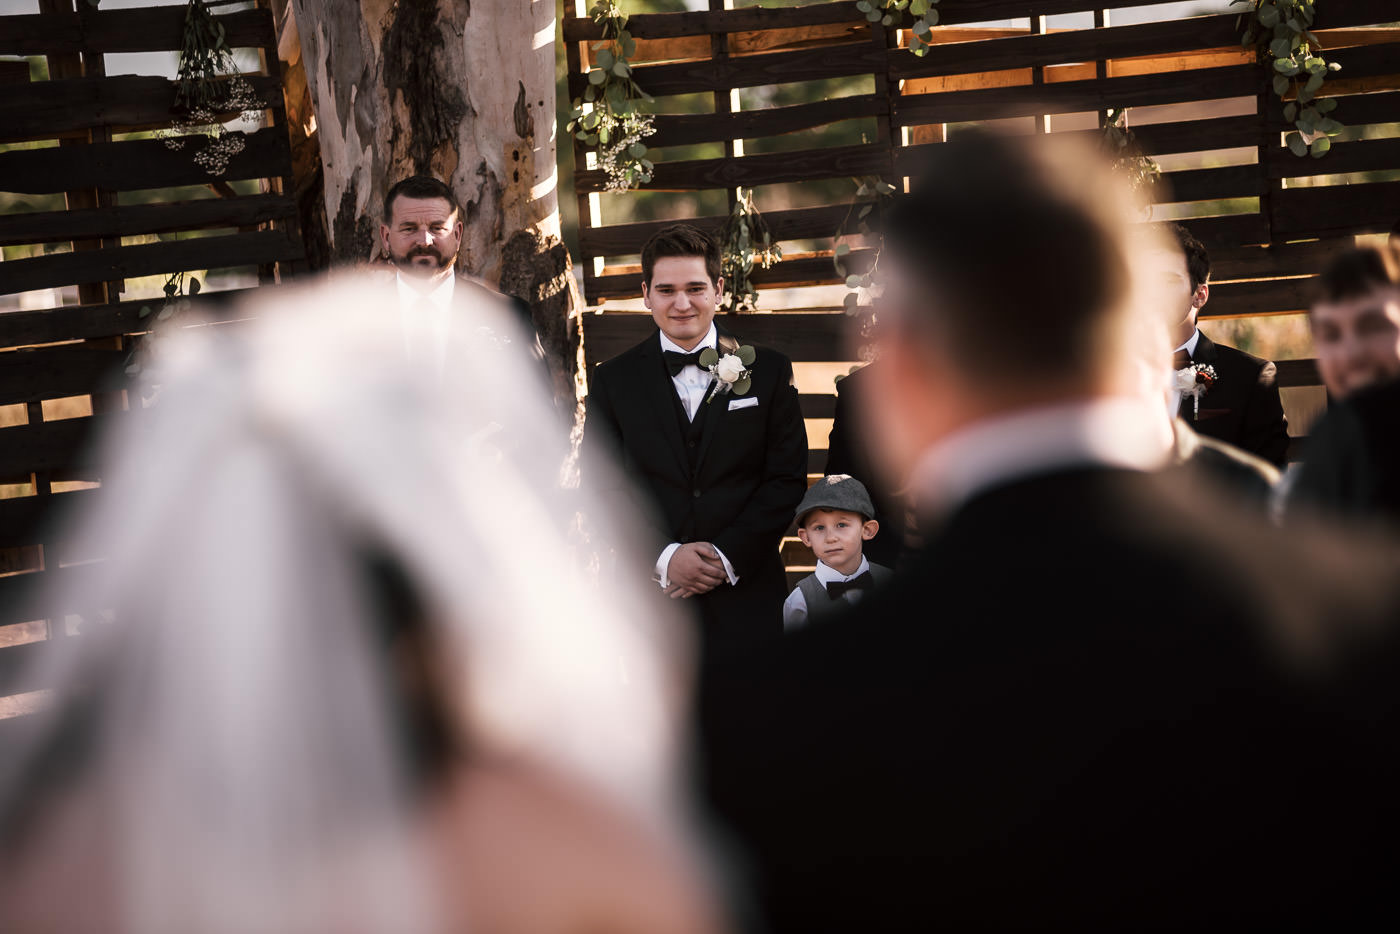 Emotional groom sees his bride for the first time as she walks down the aisle.